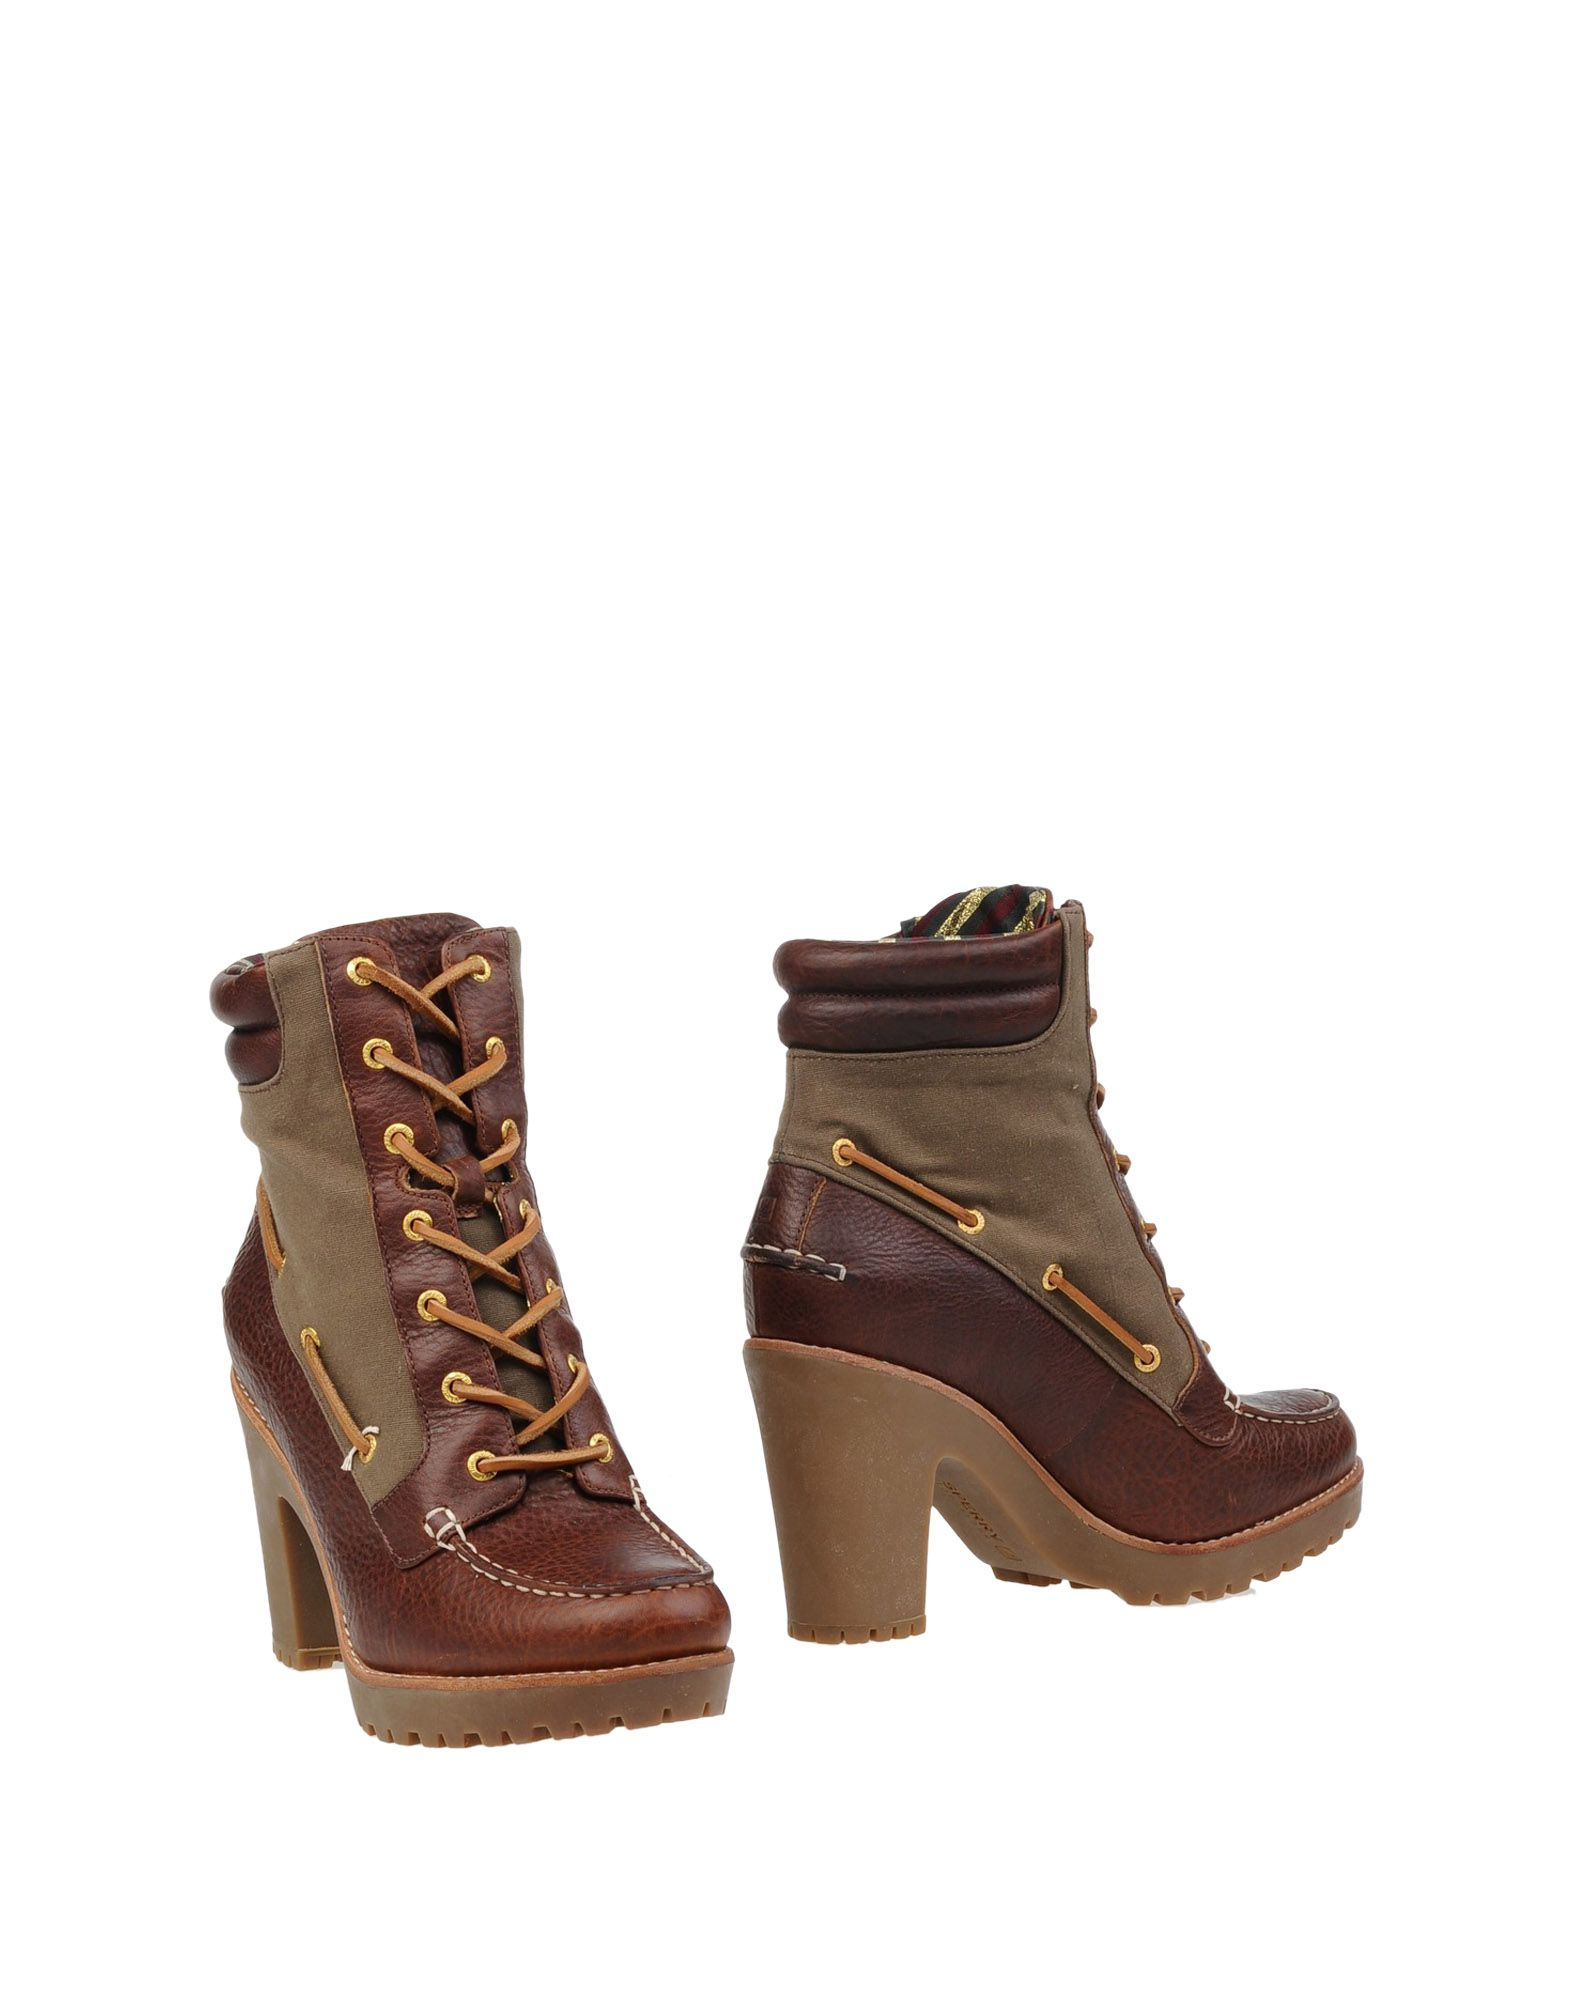 sperry top sider ankle boots in brown lyst